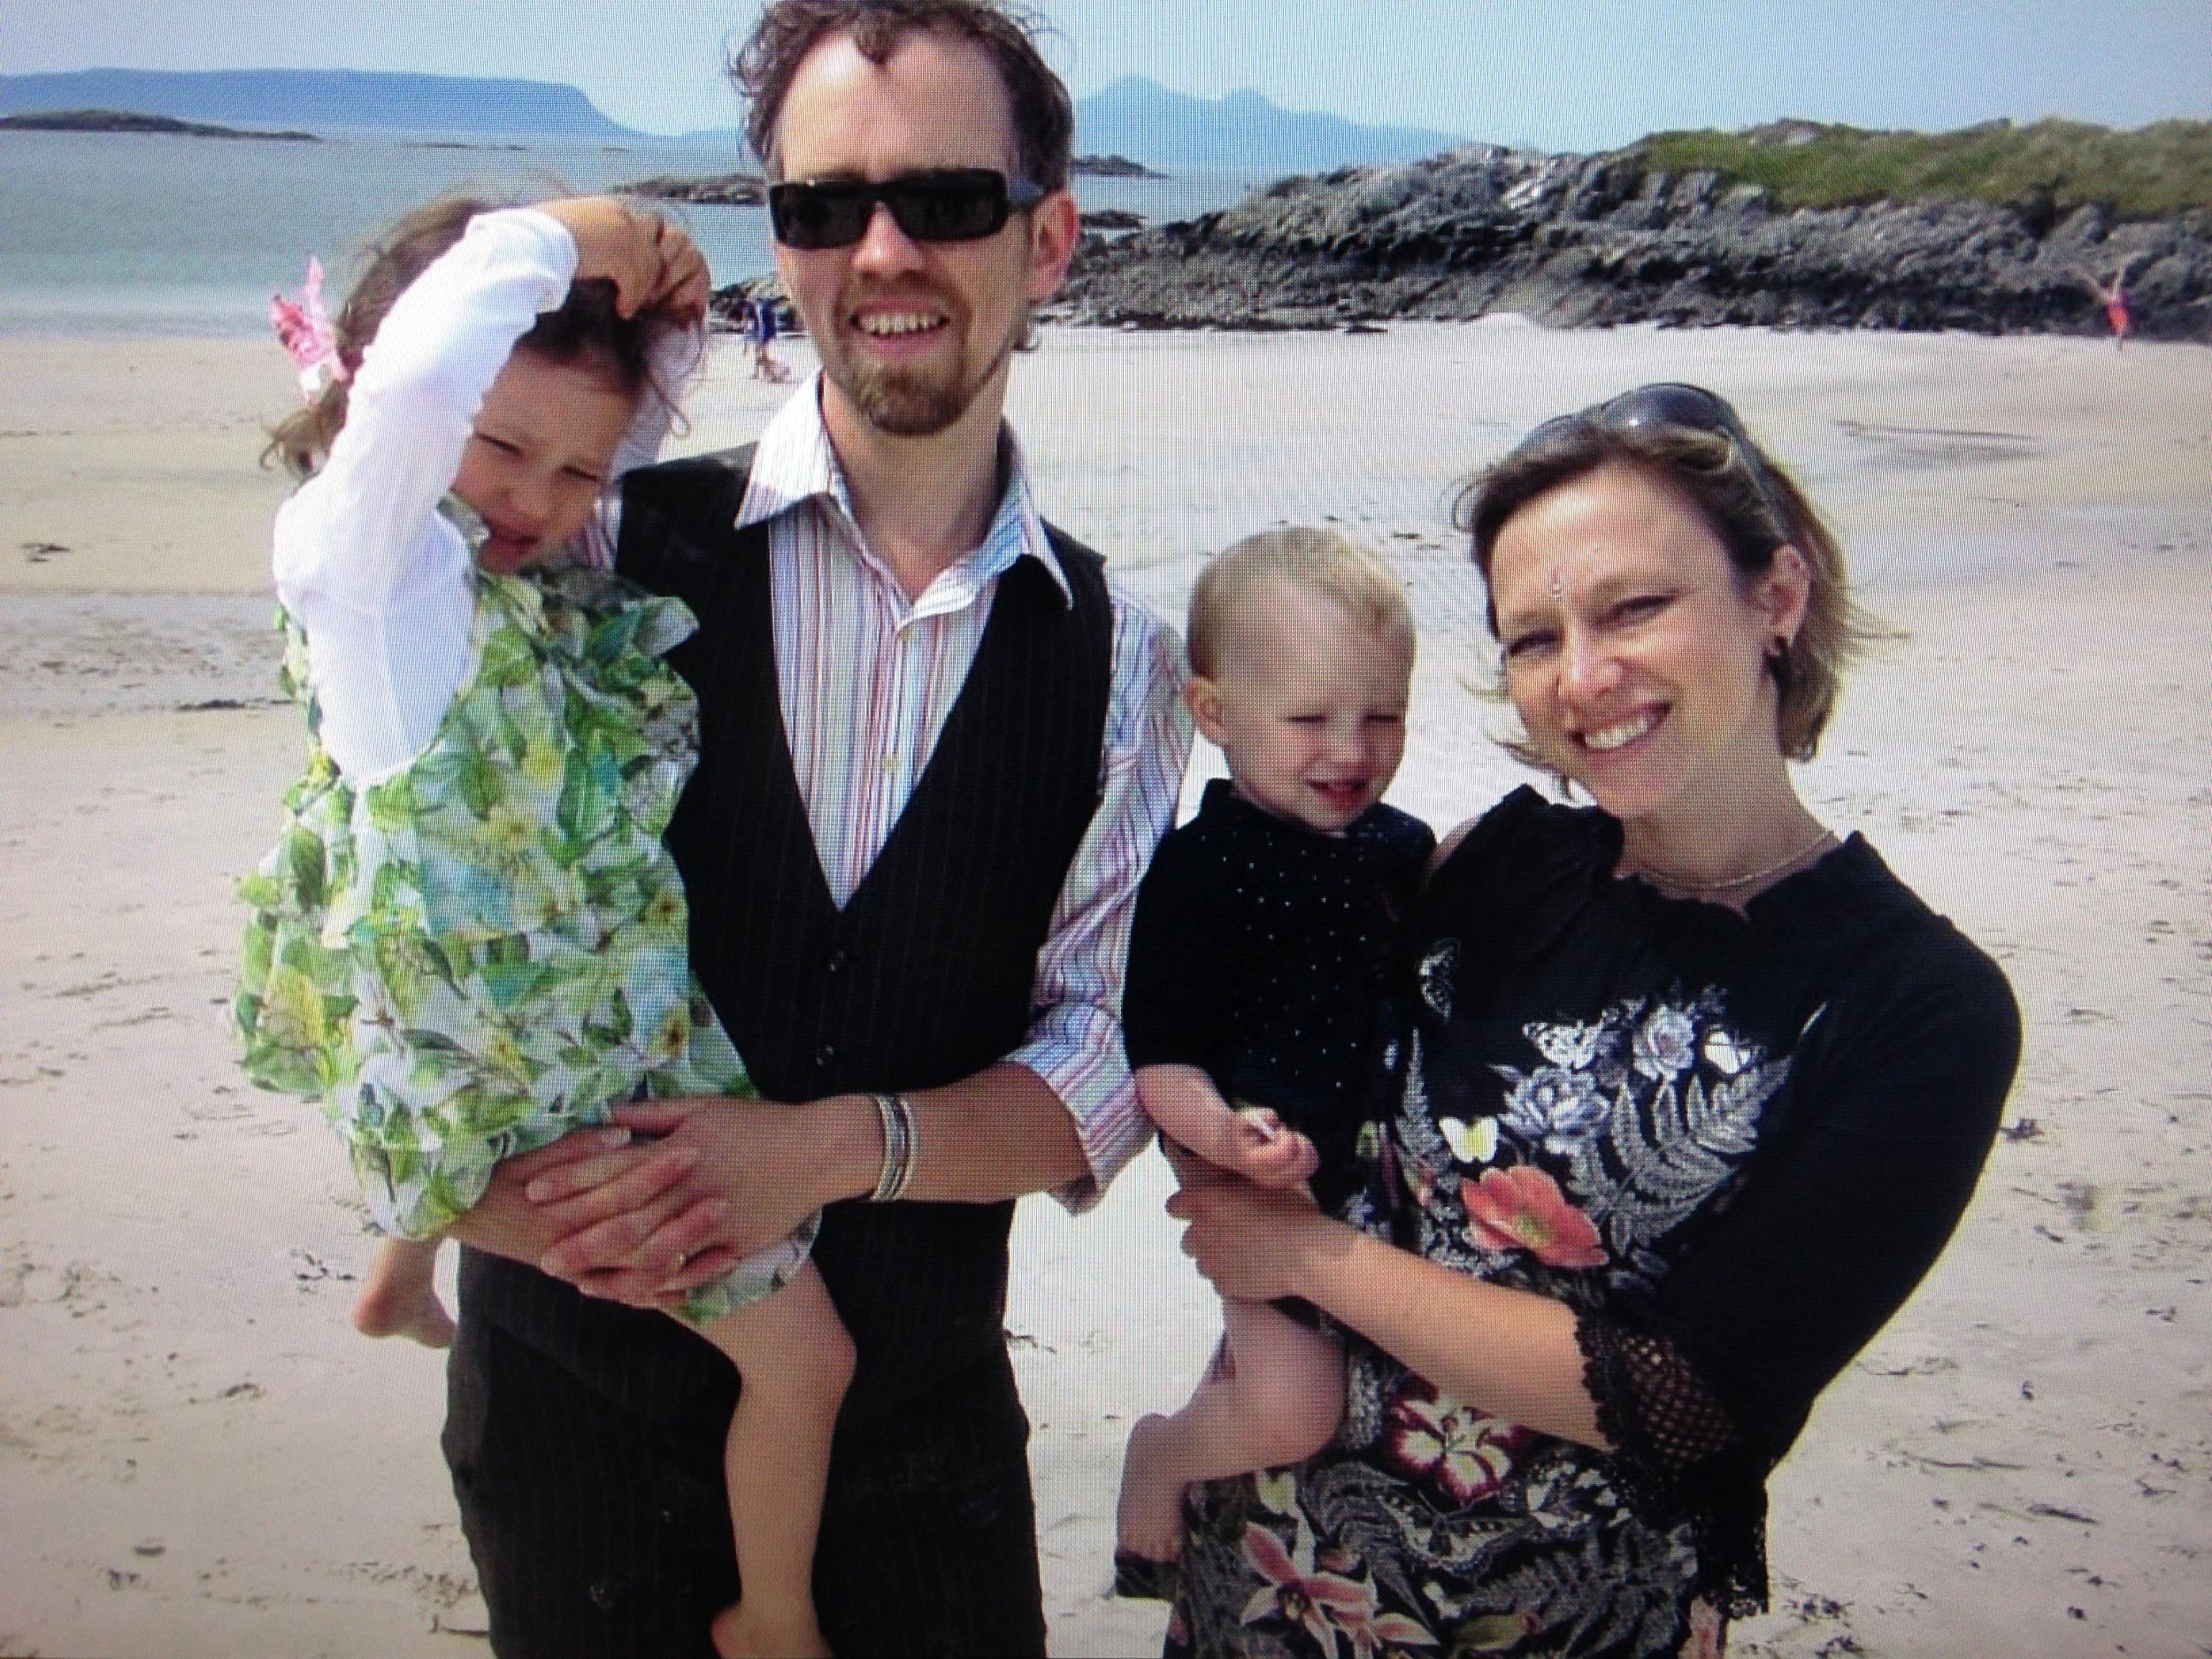 Kati with husband Dave and children Matilda and Seraphina